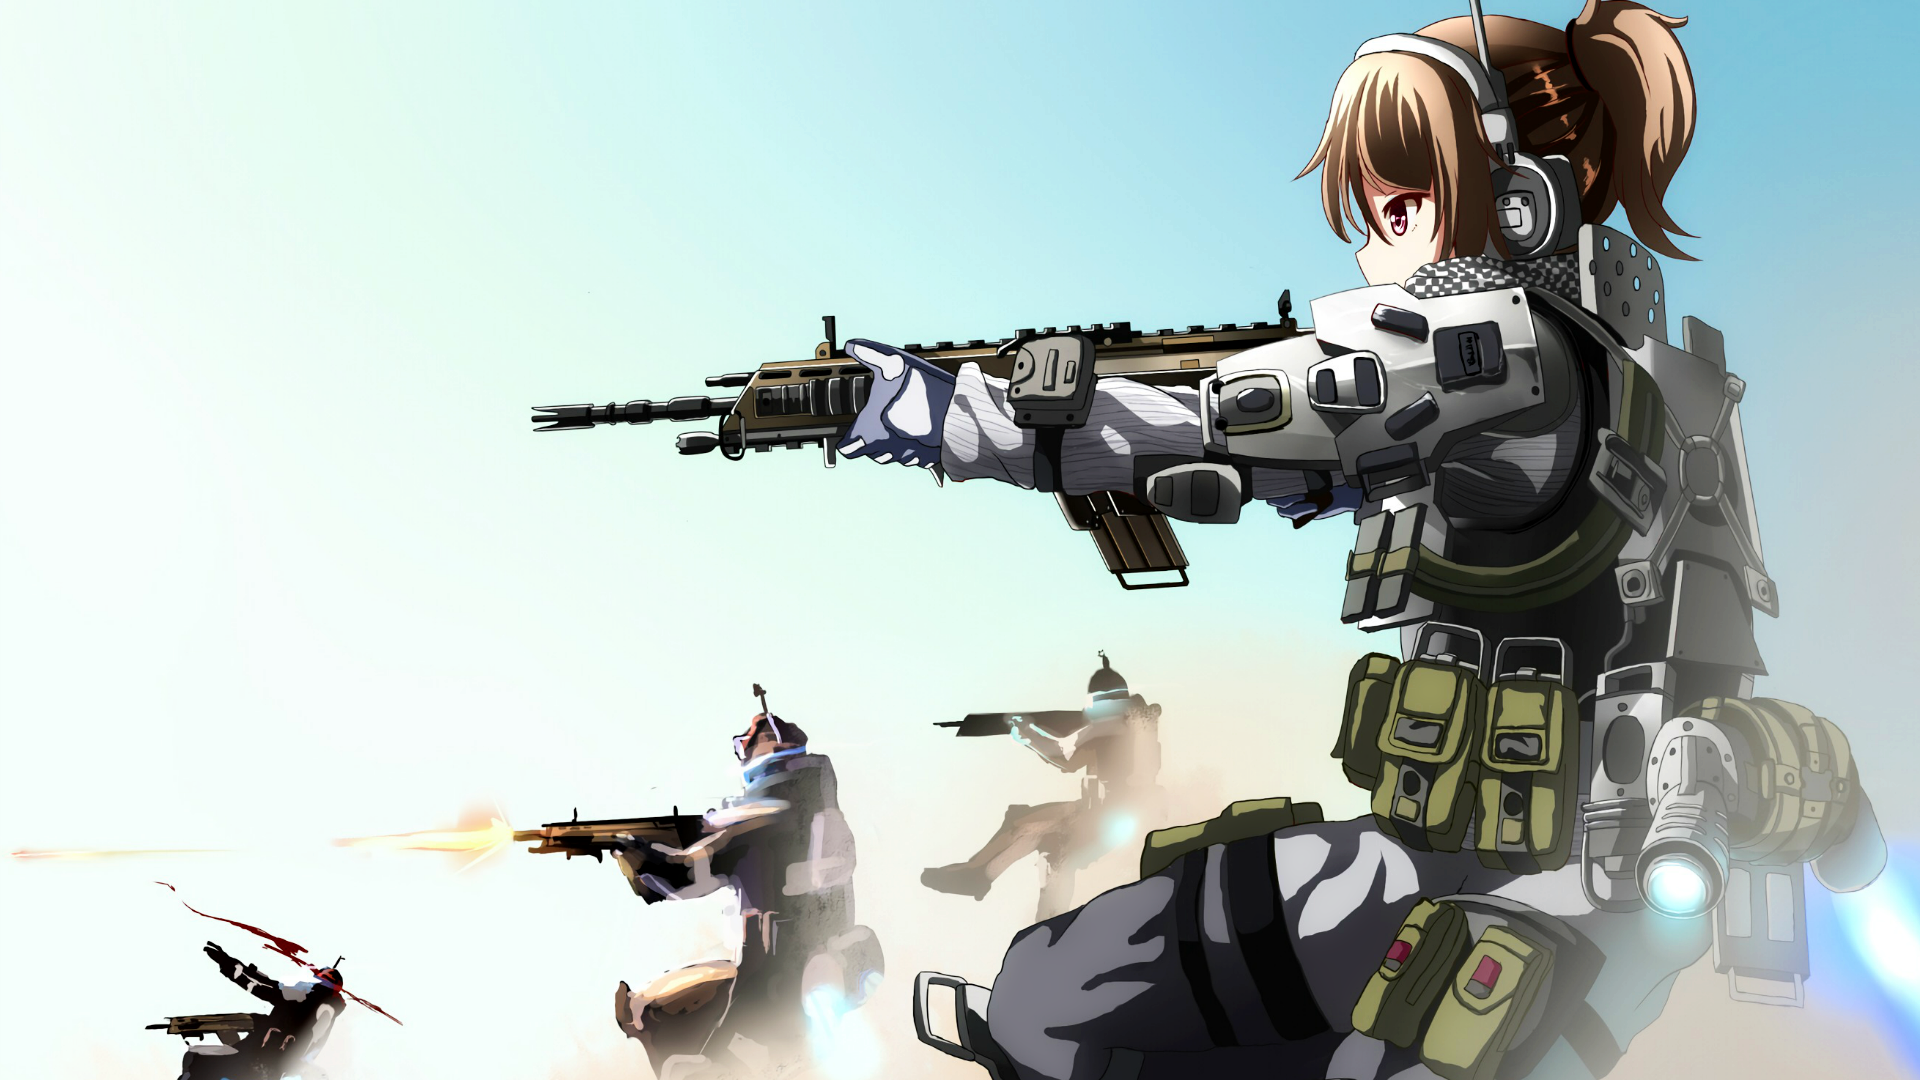 Pin by nope on weapons armor anime military anime art - Anime girl with weapon ...